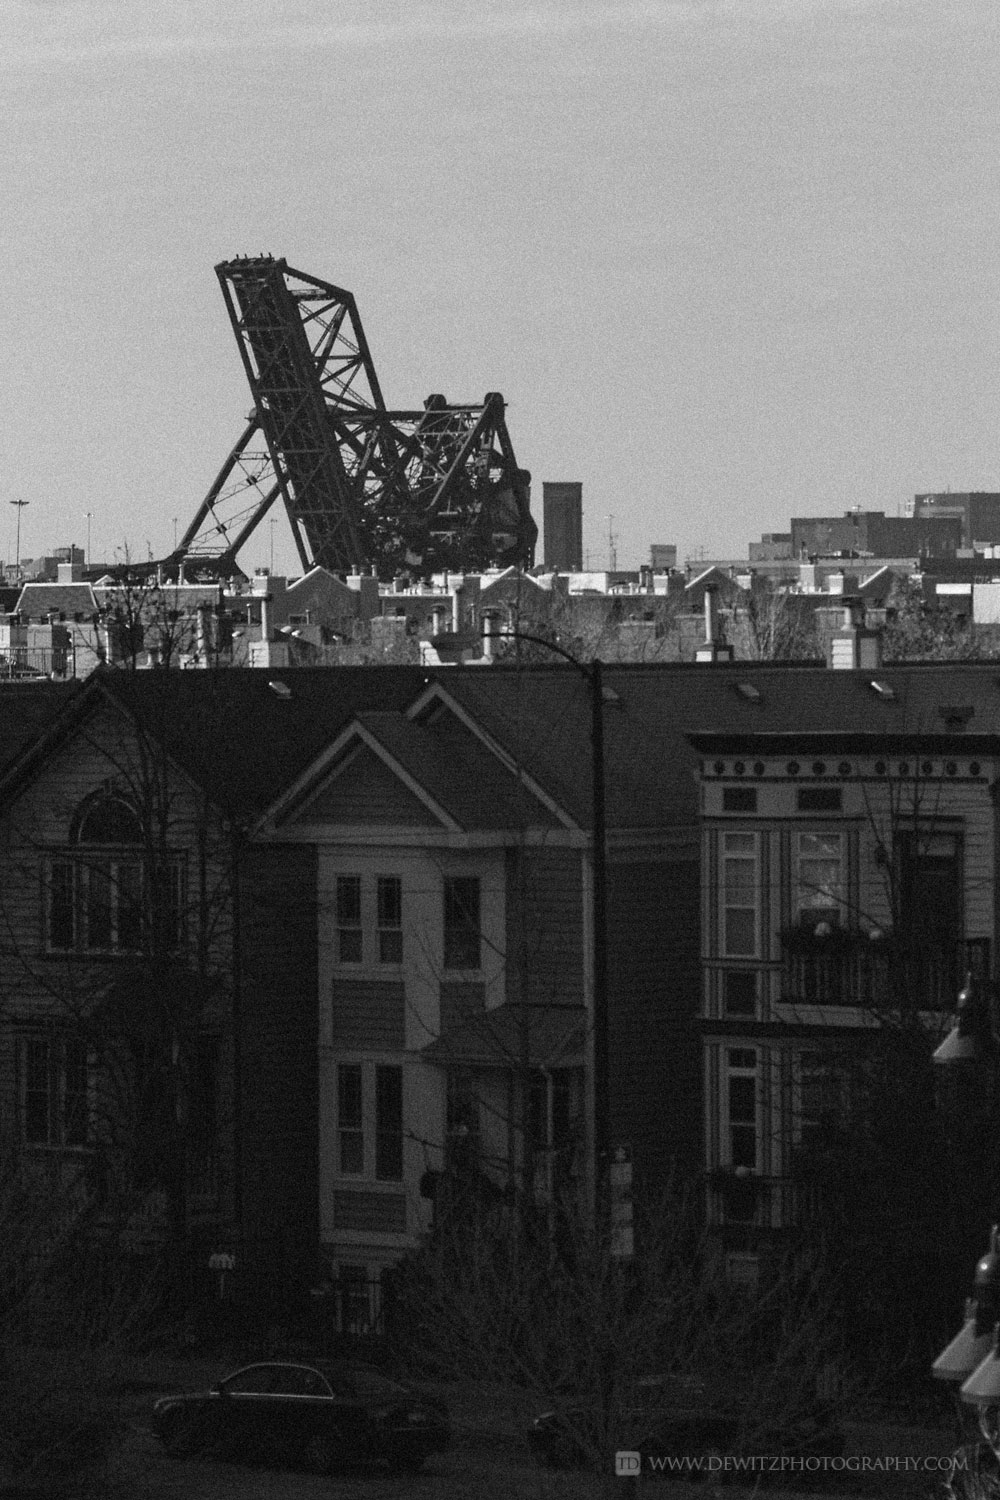 The Infrastructure that Feeds Chicago Union Station - Liftbridge Rises Above Chicago Townhouses